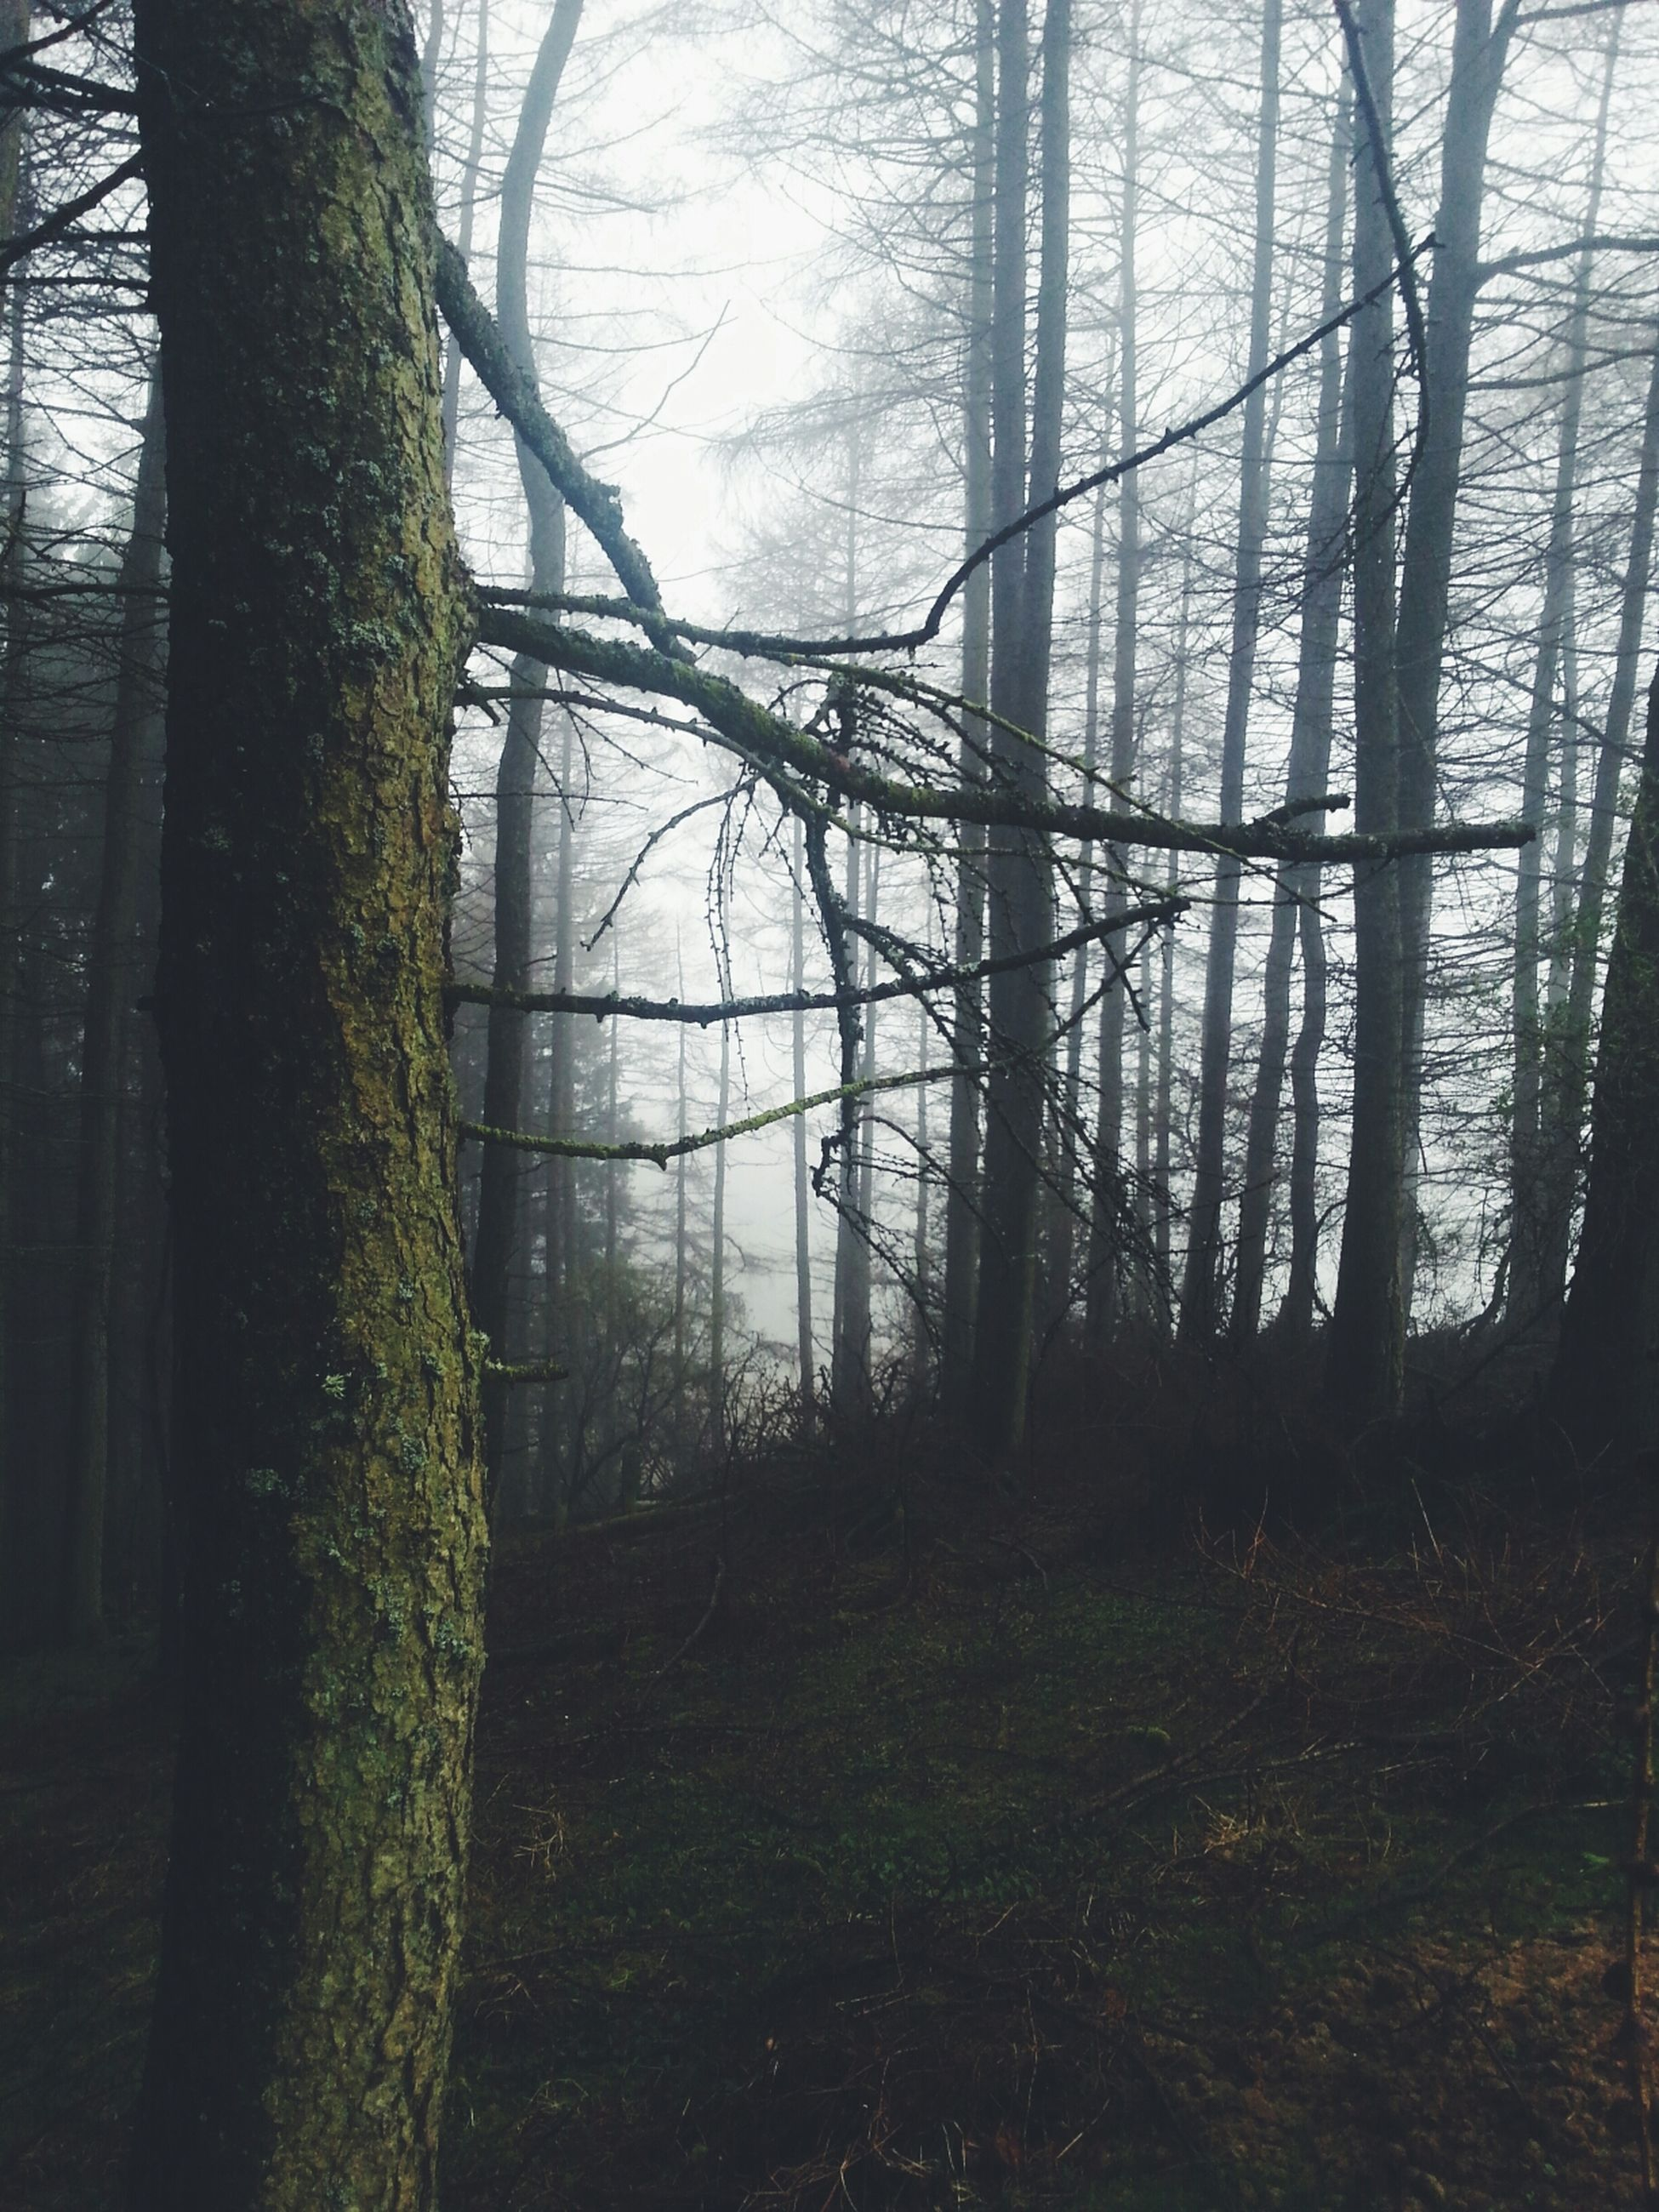 tree, tree trunk, tranquility, branch, bare tree, tranquil scene, forest, nature, growth, beauty in nature, scenics, woodland, landscape, non-urban scene, sky, outdoors, day, no people, field, idyllic